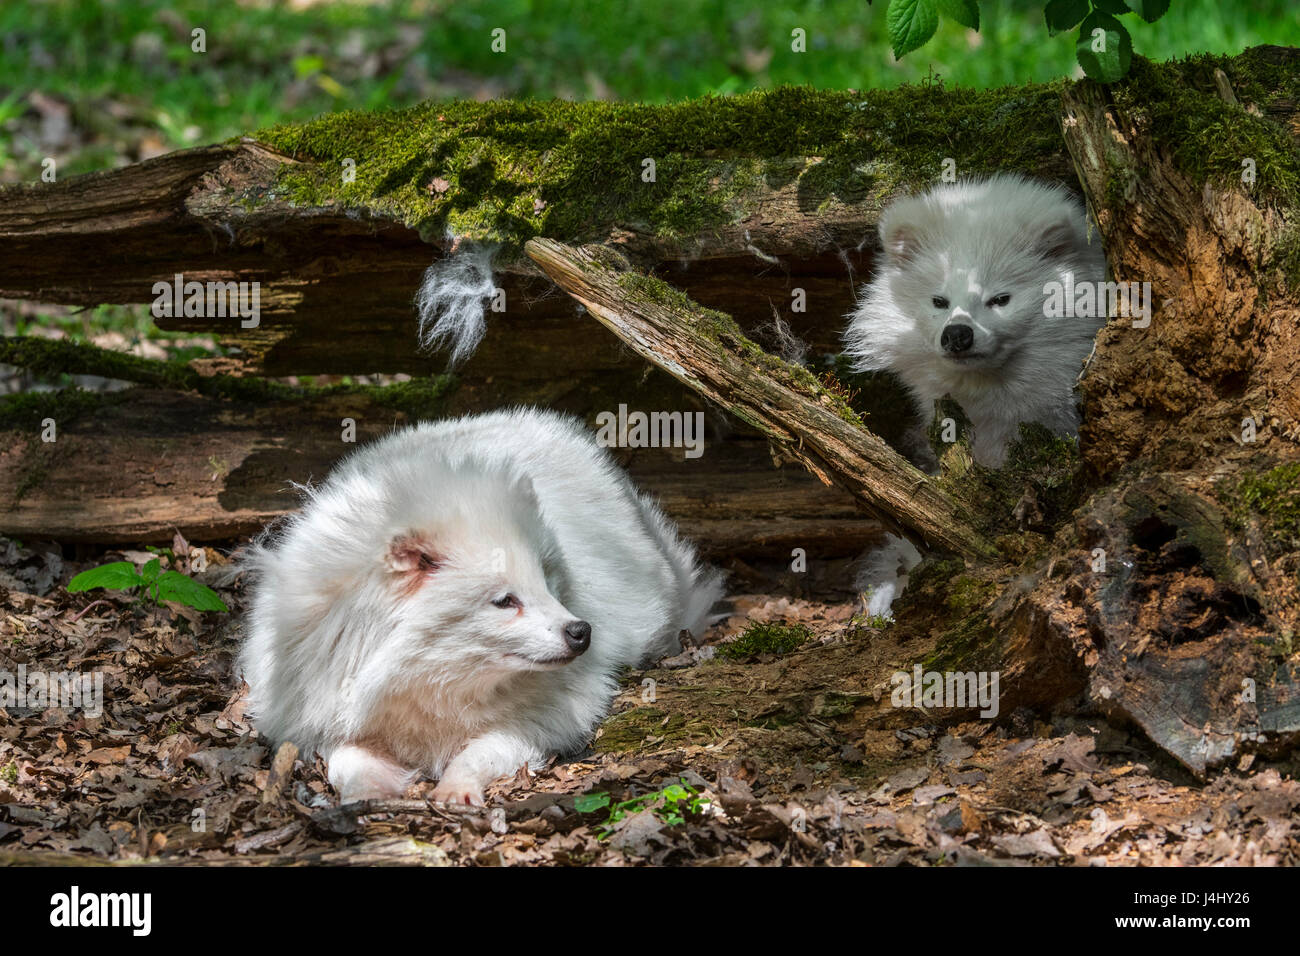 two-white-raccoon-dogs-nyctereutes-procy